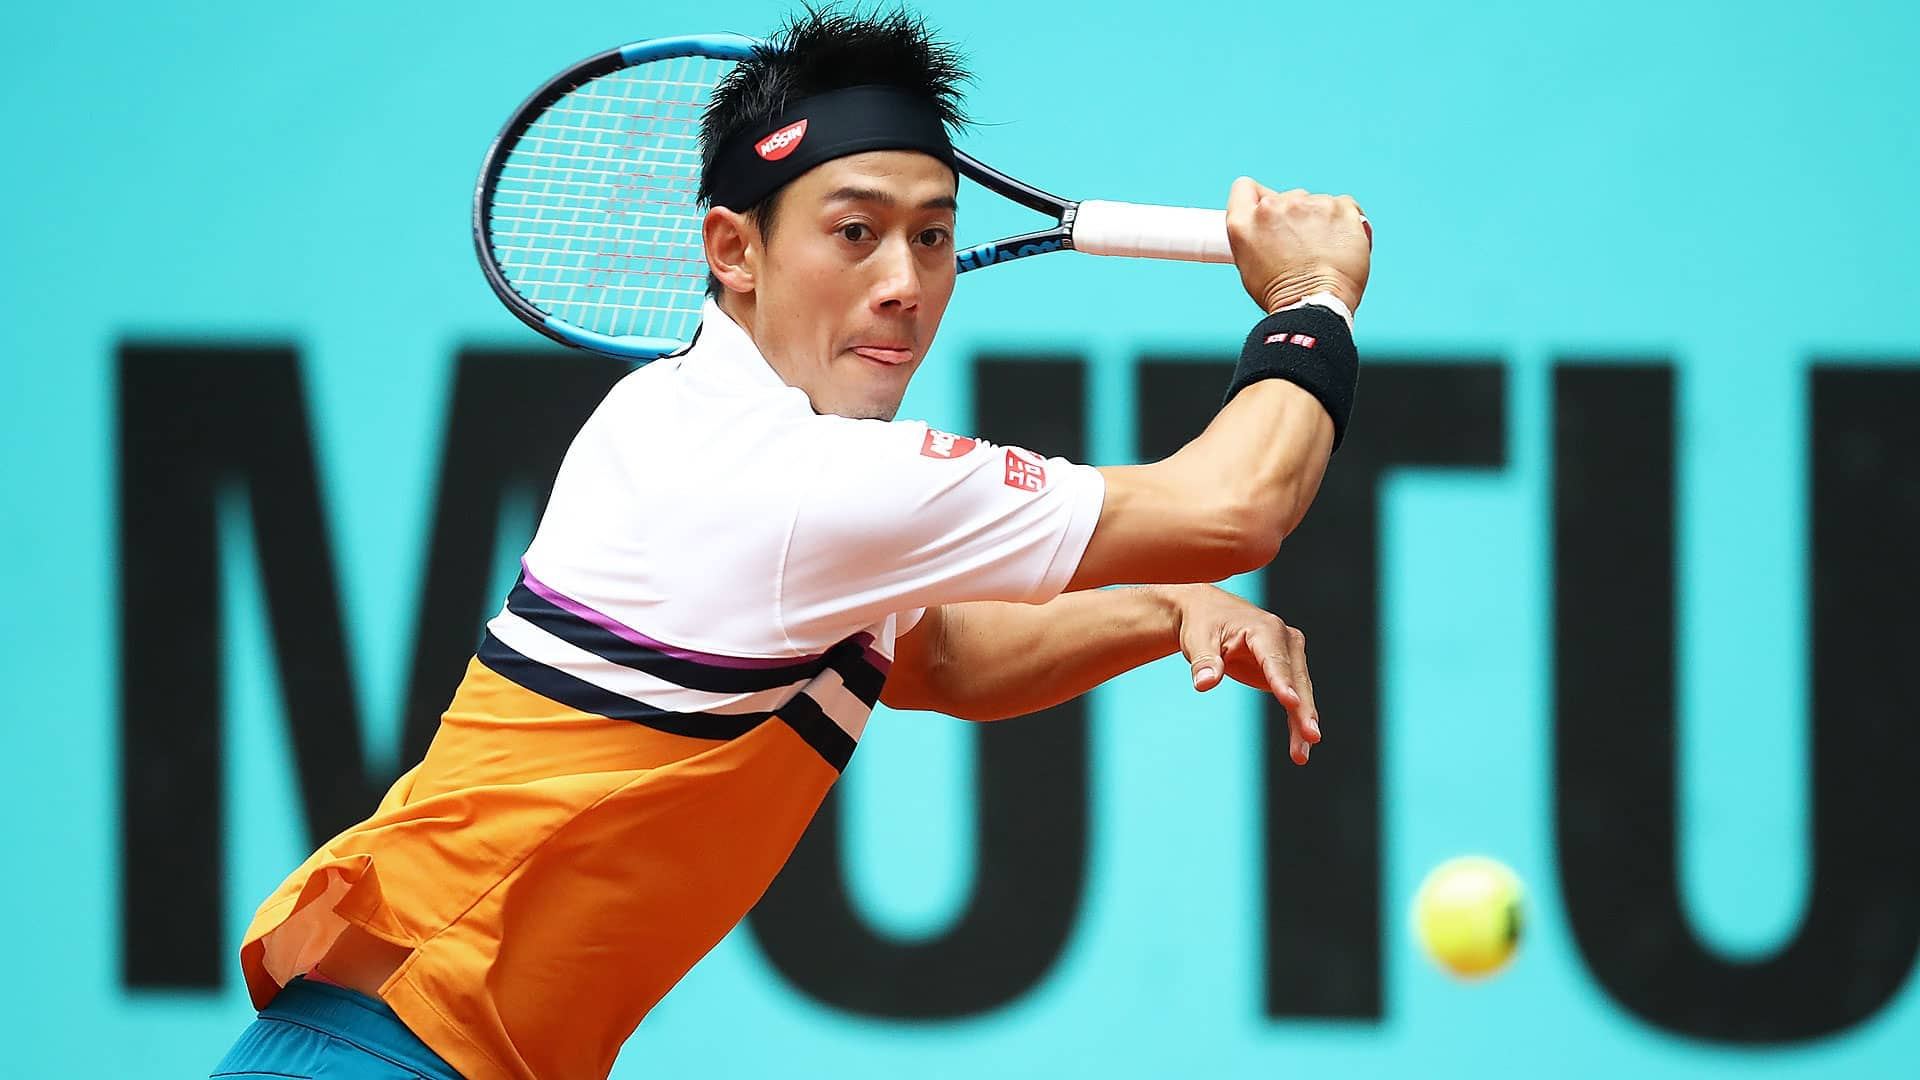 Nishikori hits a backhand on Thursday in Madrid.